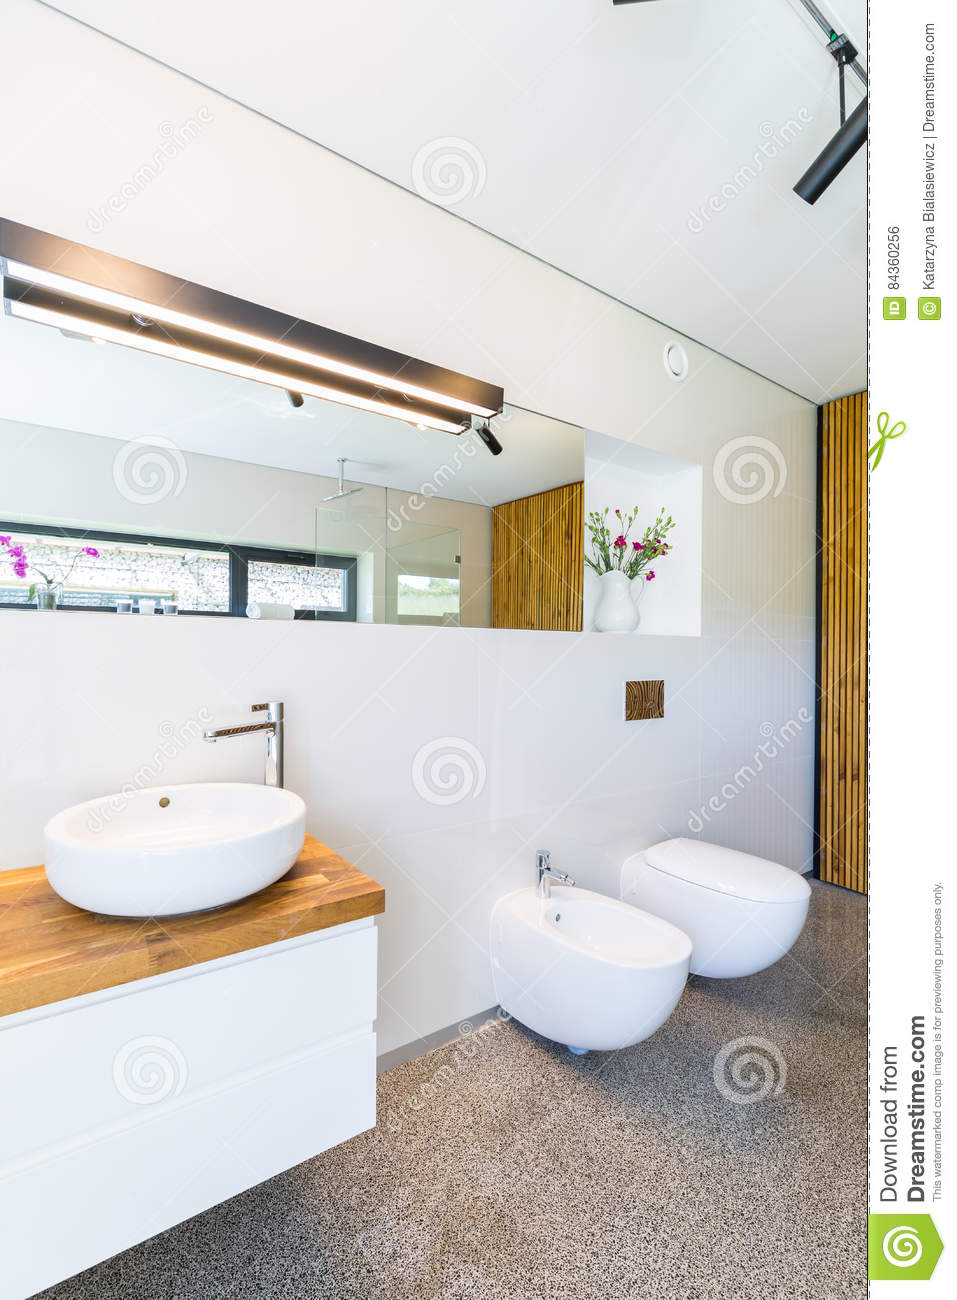 White Bathroom With Wooden Details Stock Photo - Image of style ...